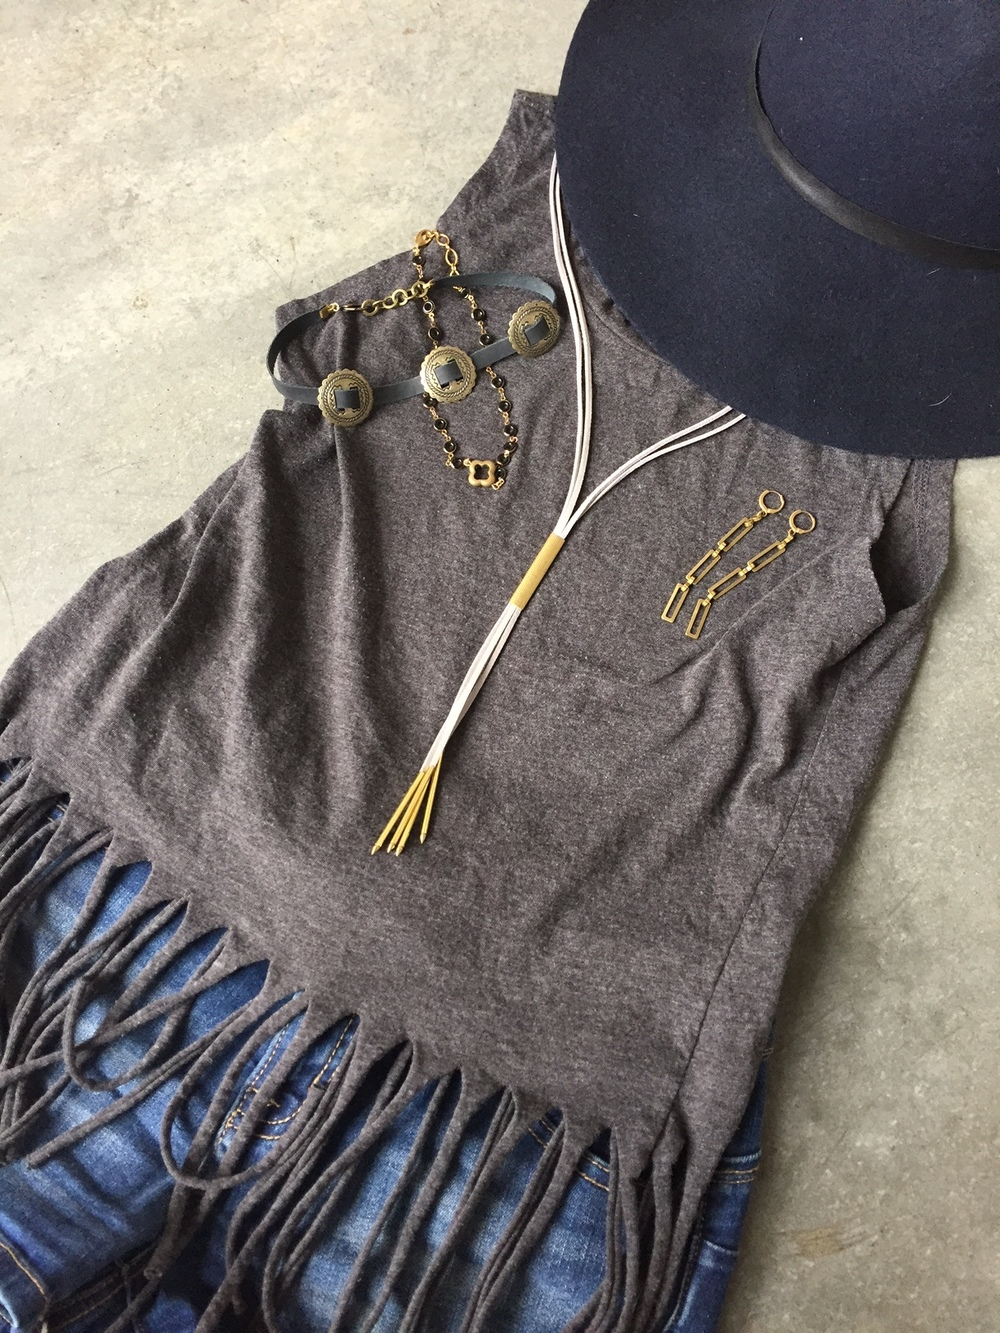 Chokers, Bolos, and dangle earrings paired with a fringe crop top and cut offs.